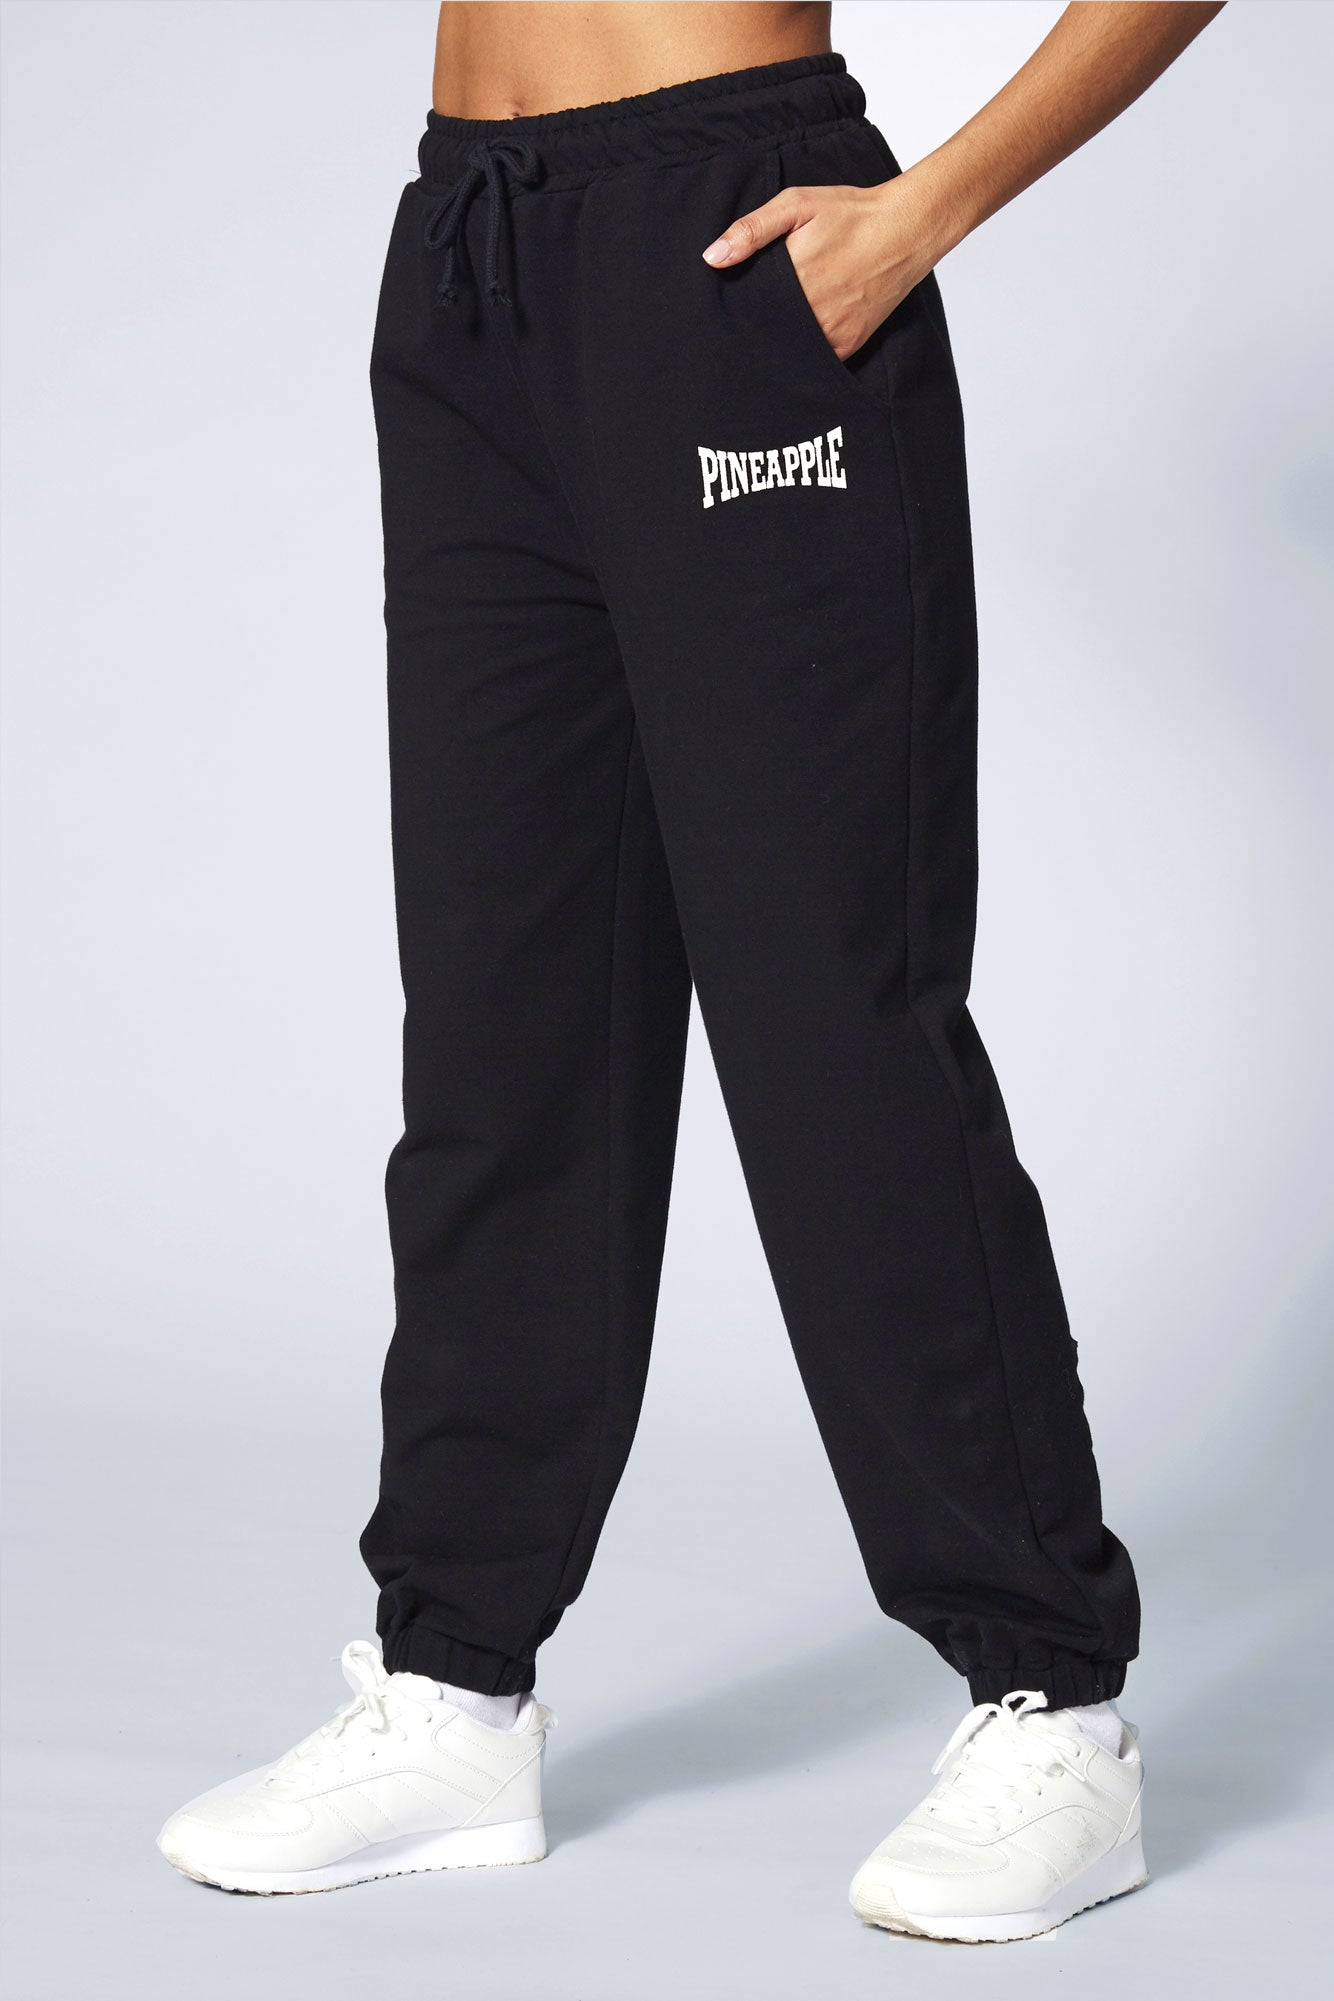 Pineapple Dance Women's Black Oversized Pocket Jogger online PT17500A1